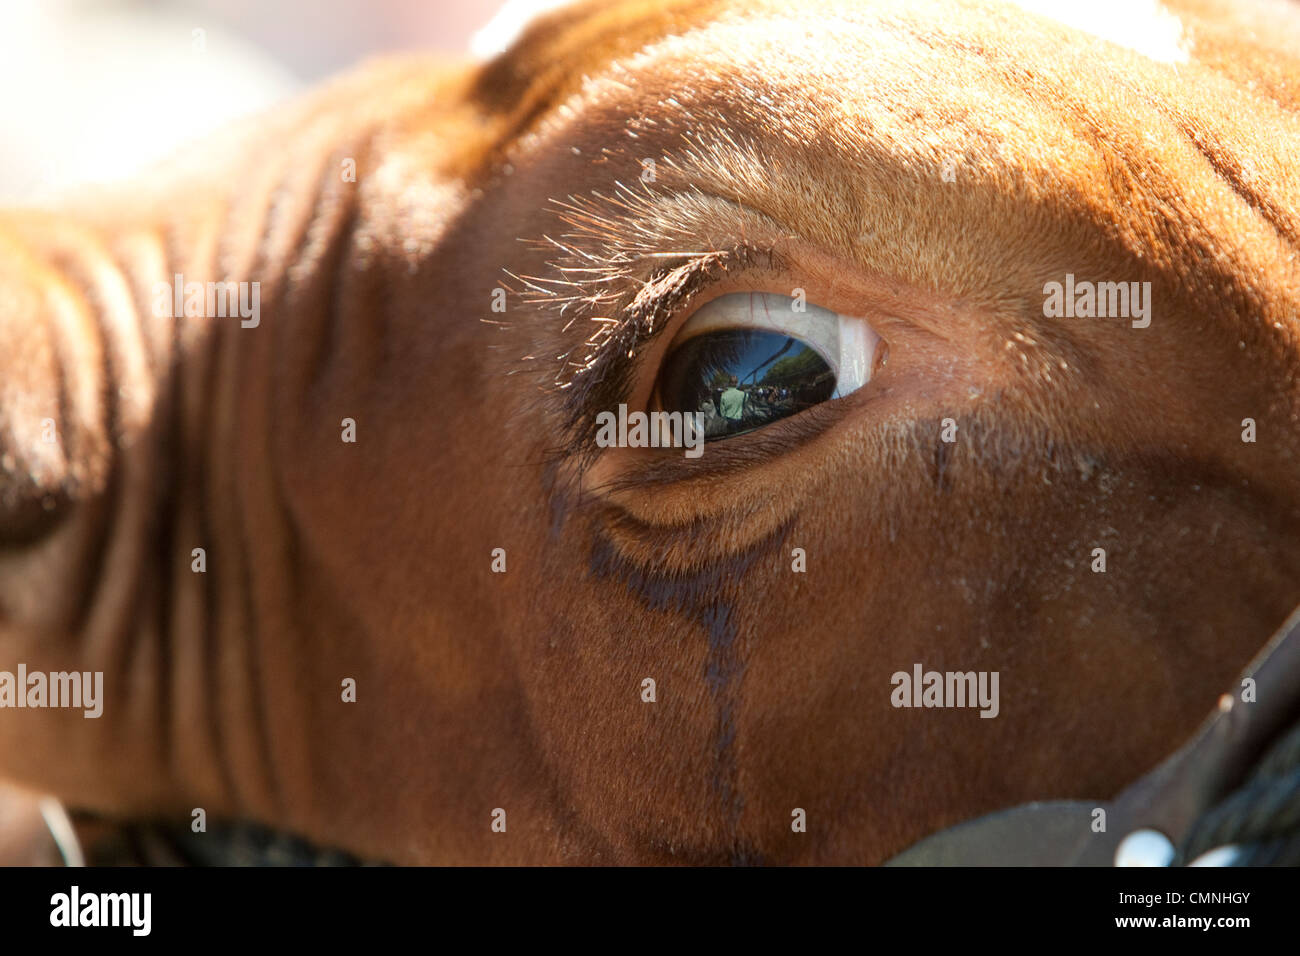 Eye close-up of  a Grand Champion Steer during rodeo competition in Austin Texas - Stock Image